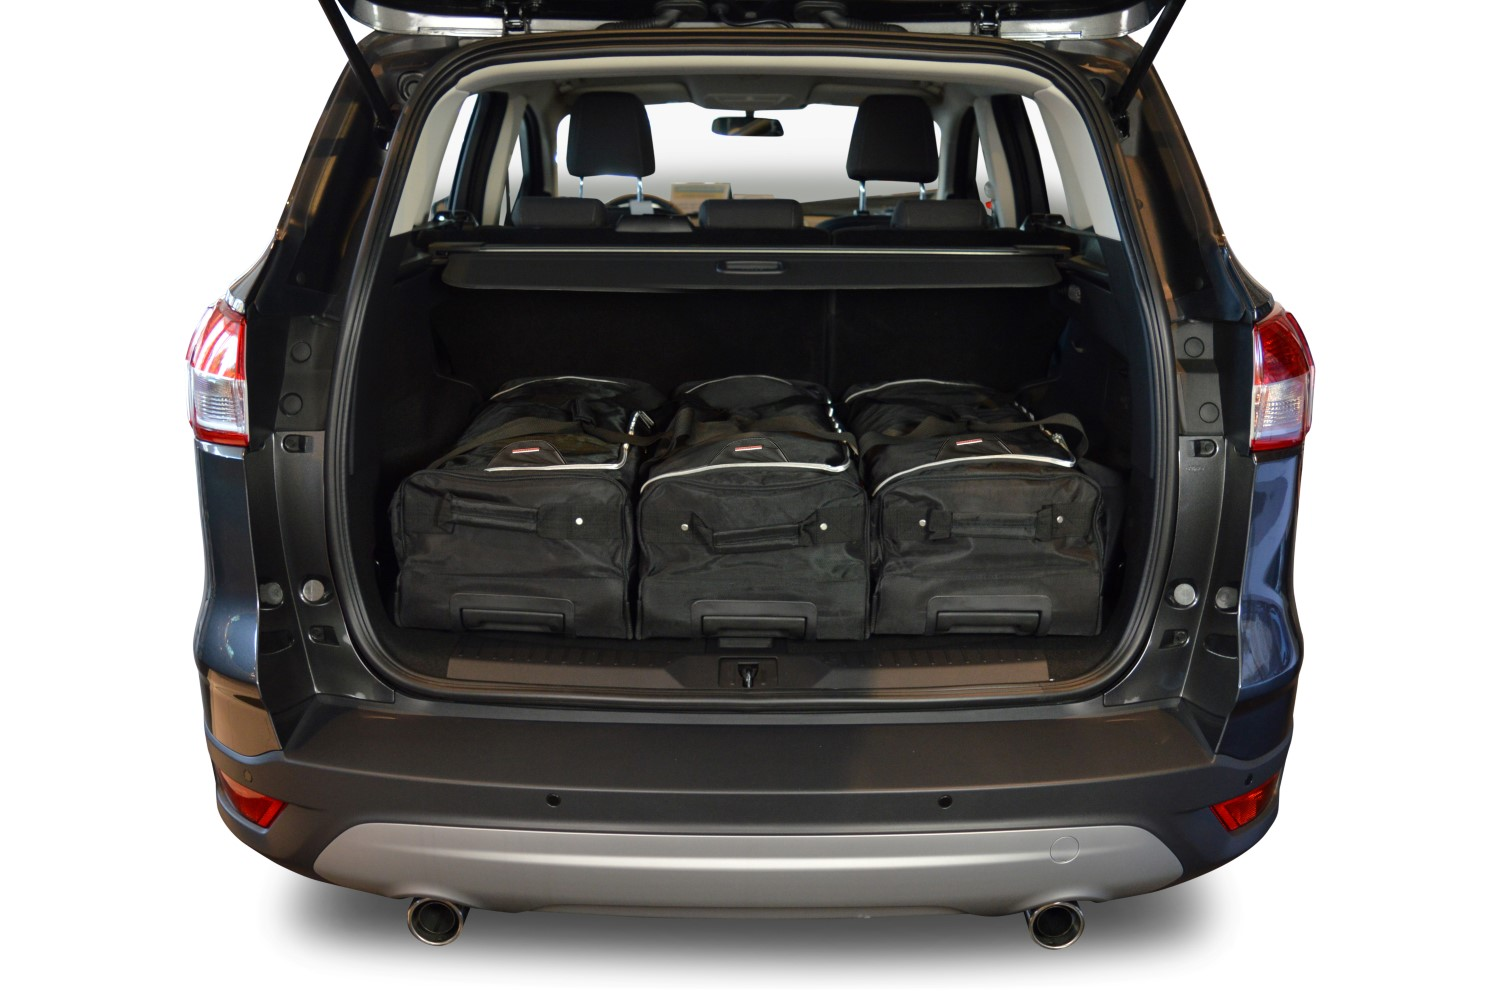 kuga ford kuga ii 2012 present car bags travel bags. Black Bedroom Furniture Sets. Home Design Ideas